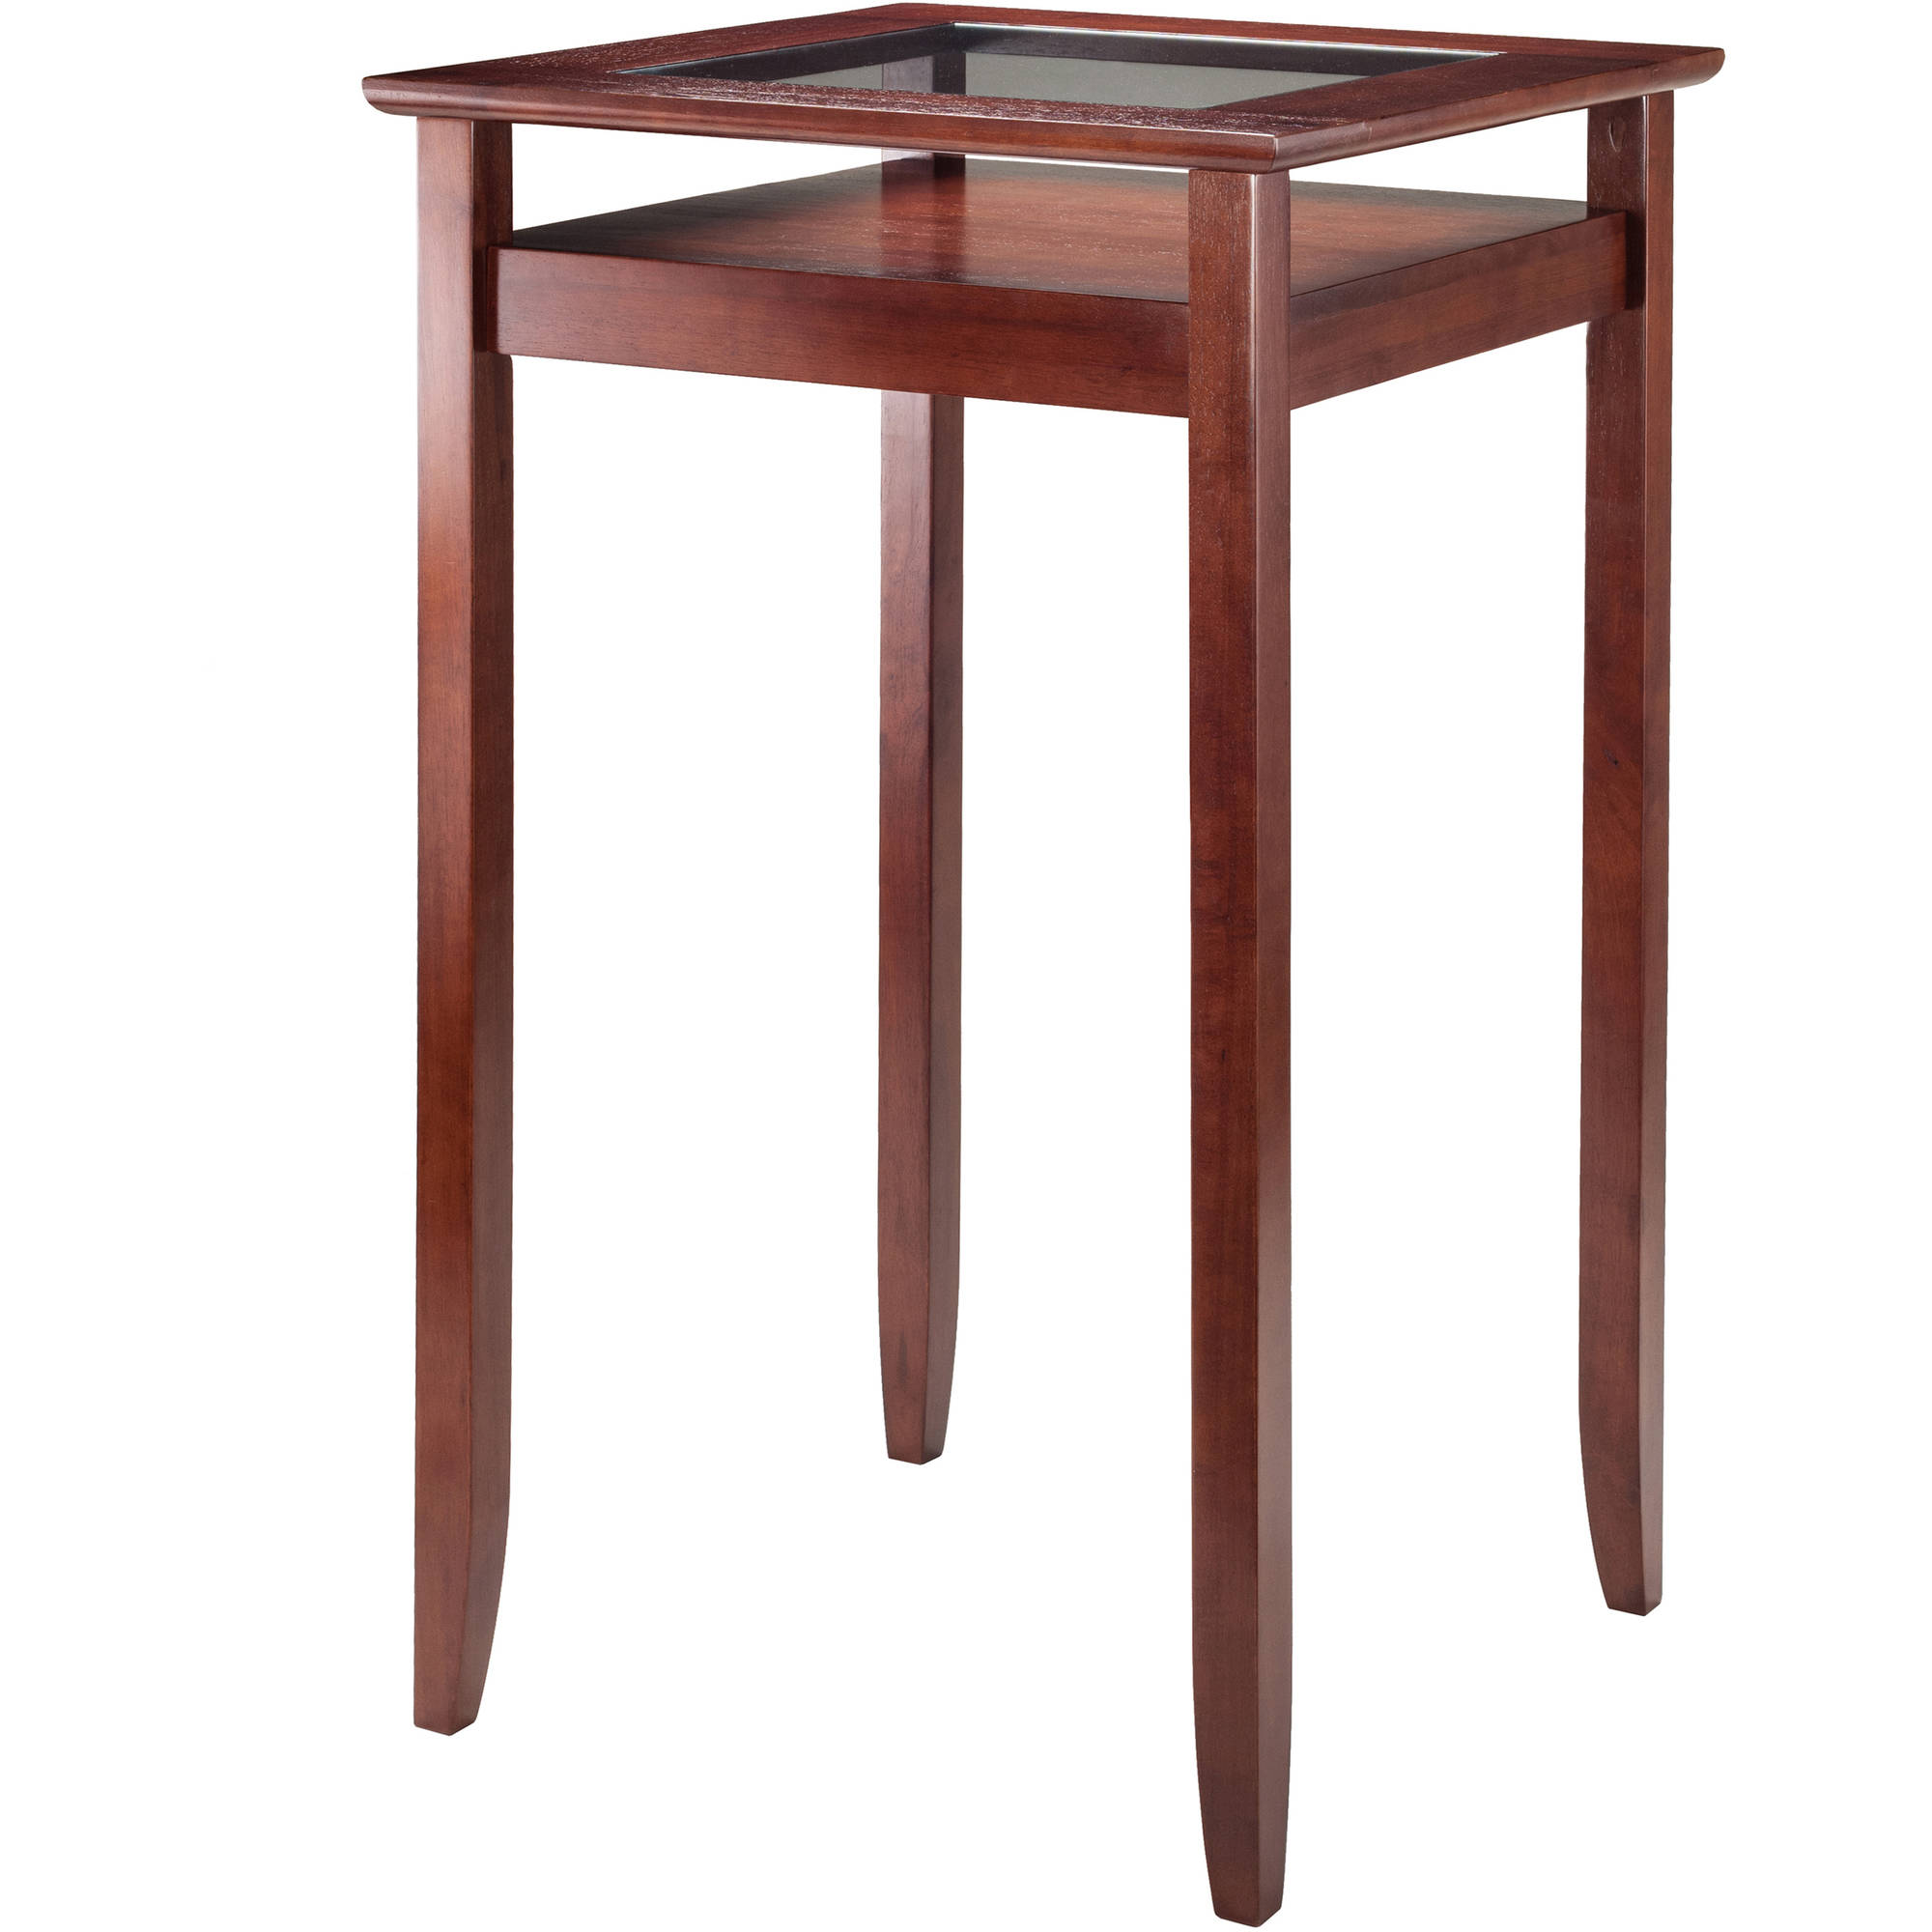 Halo Pub Table with Glass Inset and Shelf, Walnut by Winsome Wood